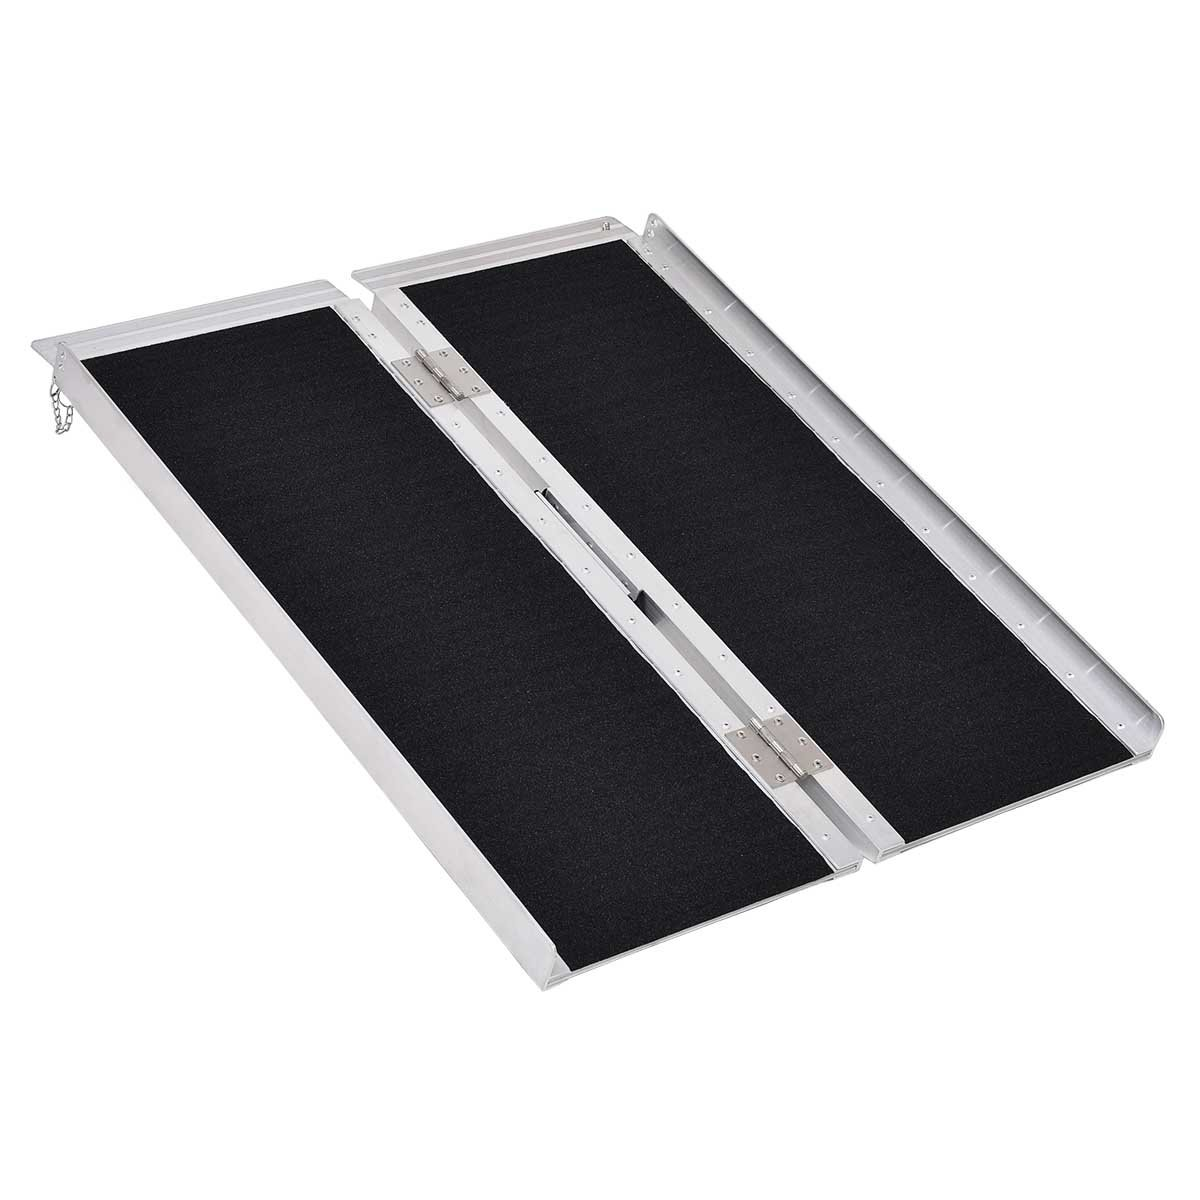 Safeplus Portable Aluminum Non-skid 3' Multifold Wheelchair Ramp Scooter Mobility Ramp (MF3)